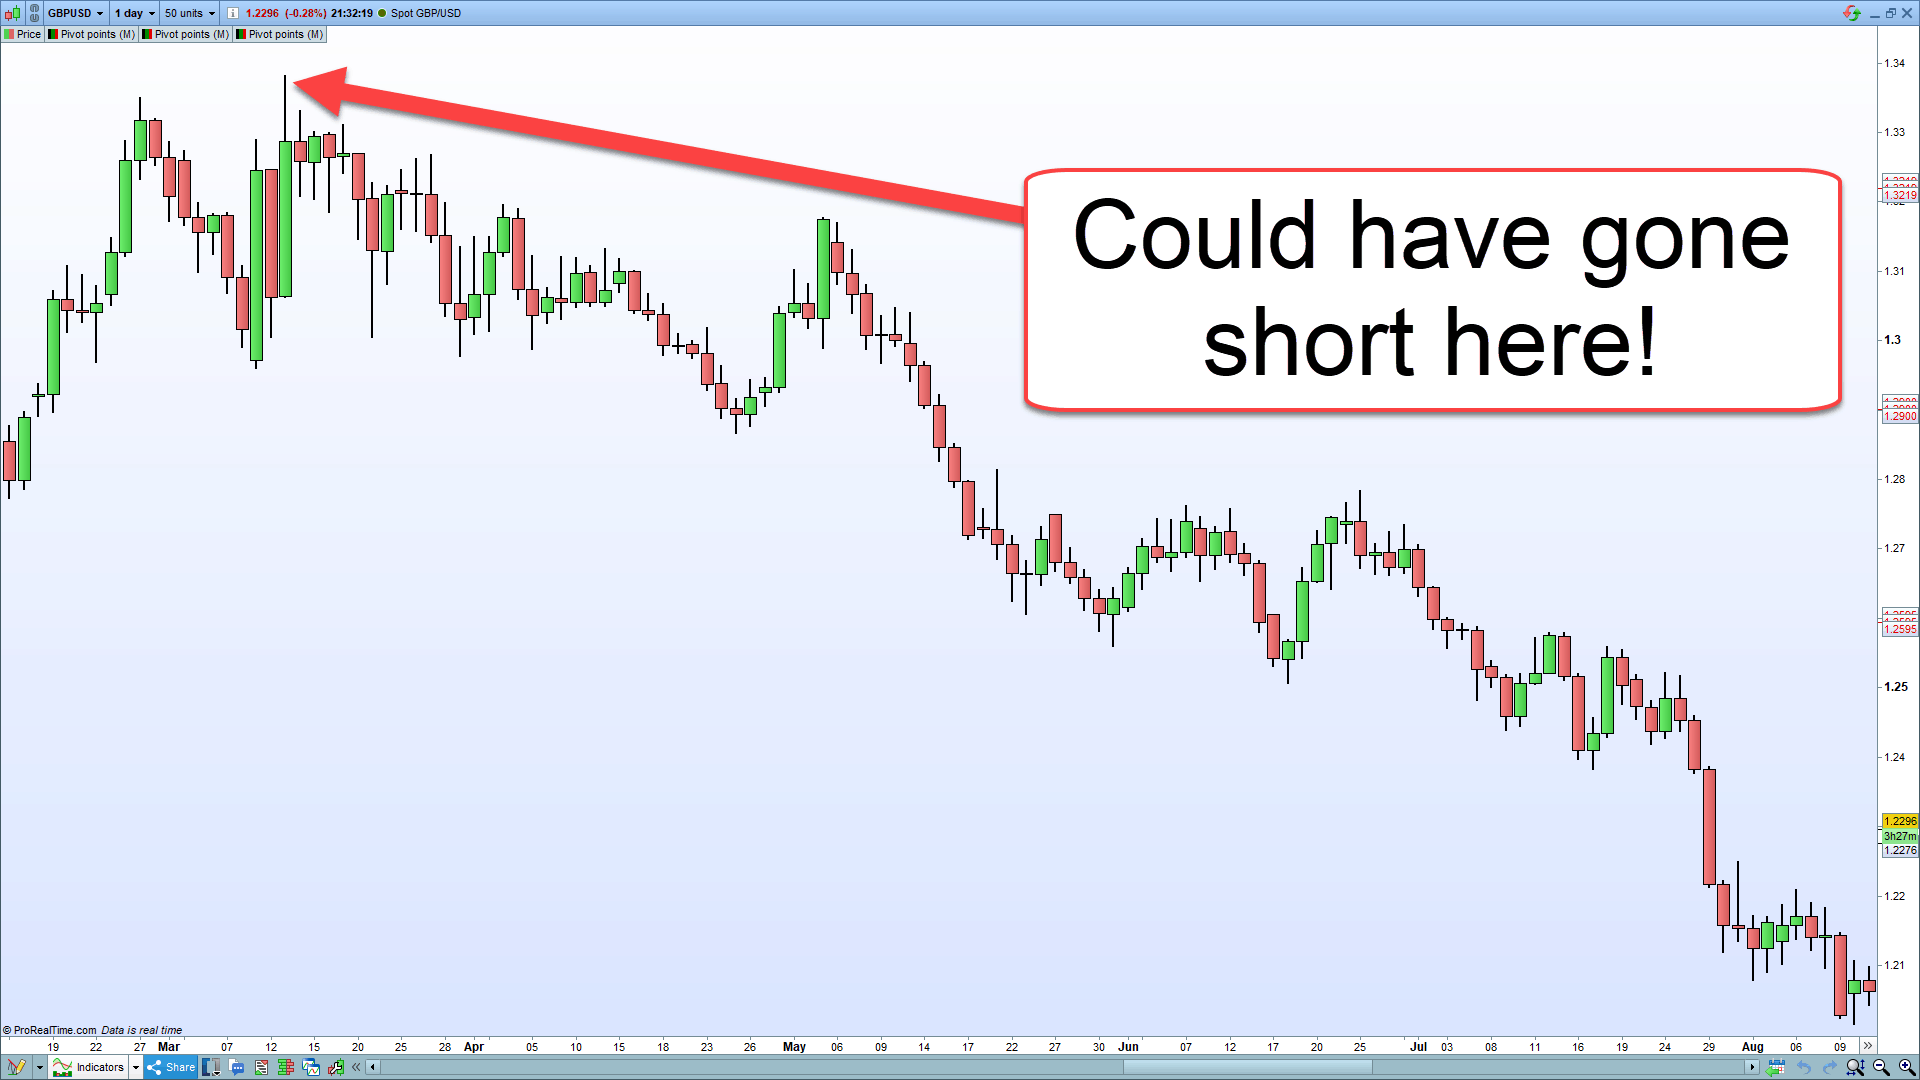 A chart showing a move in the market in hindsight.